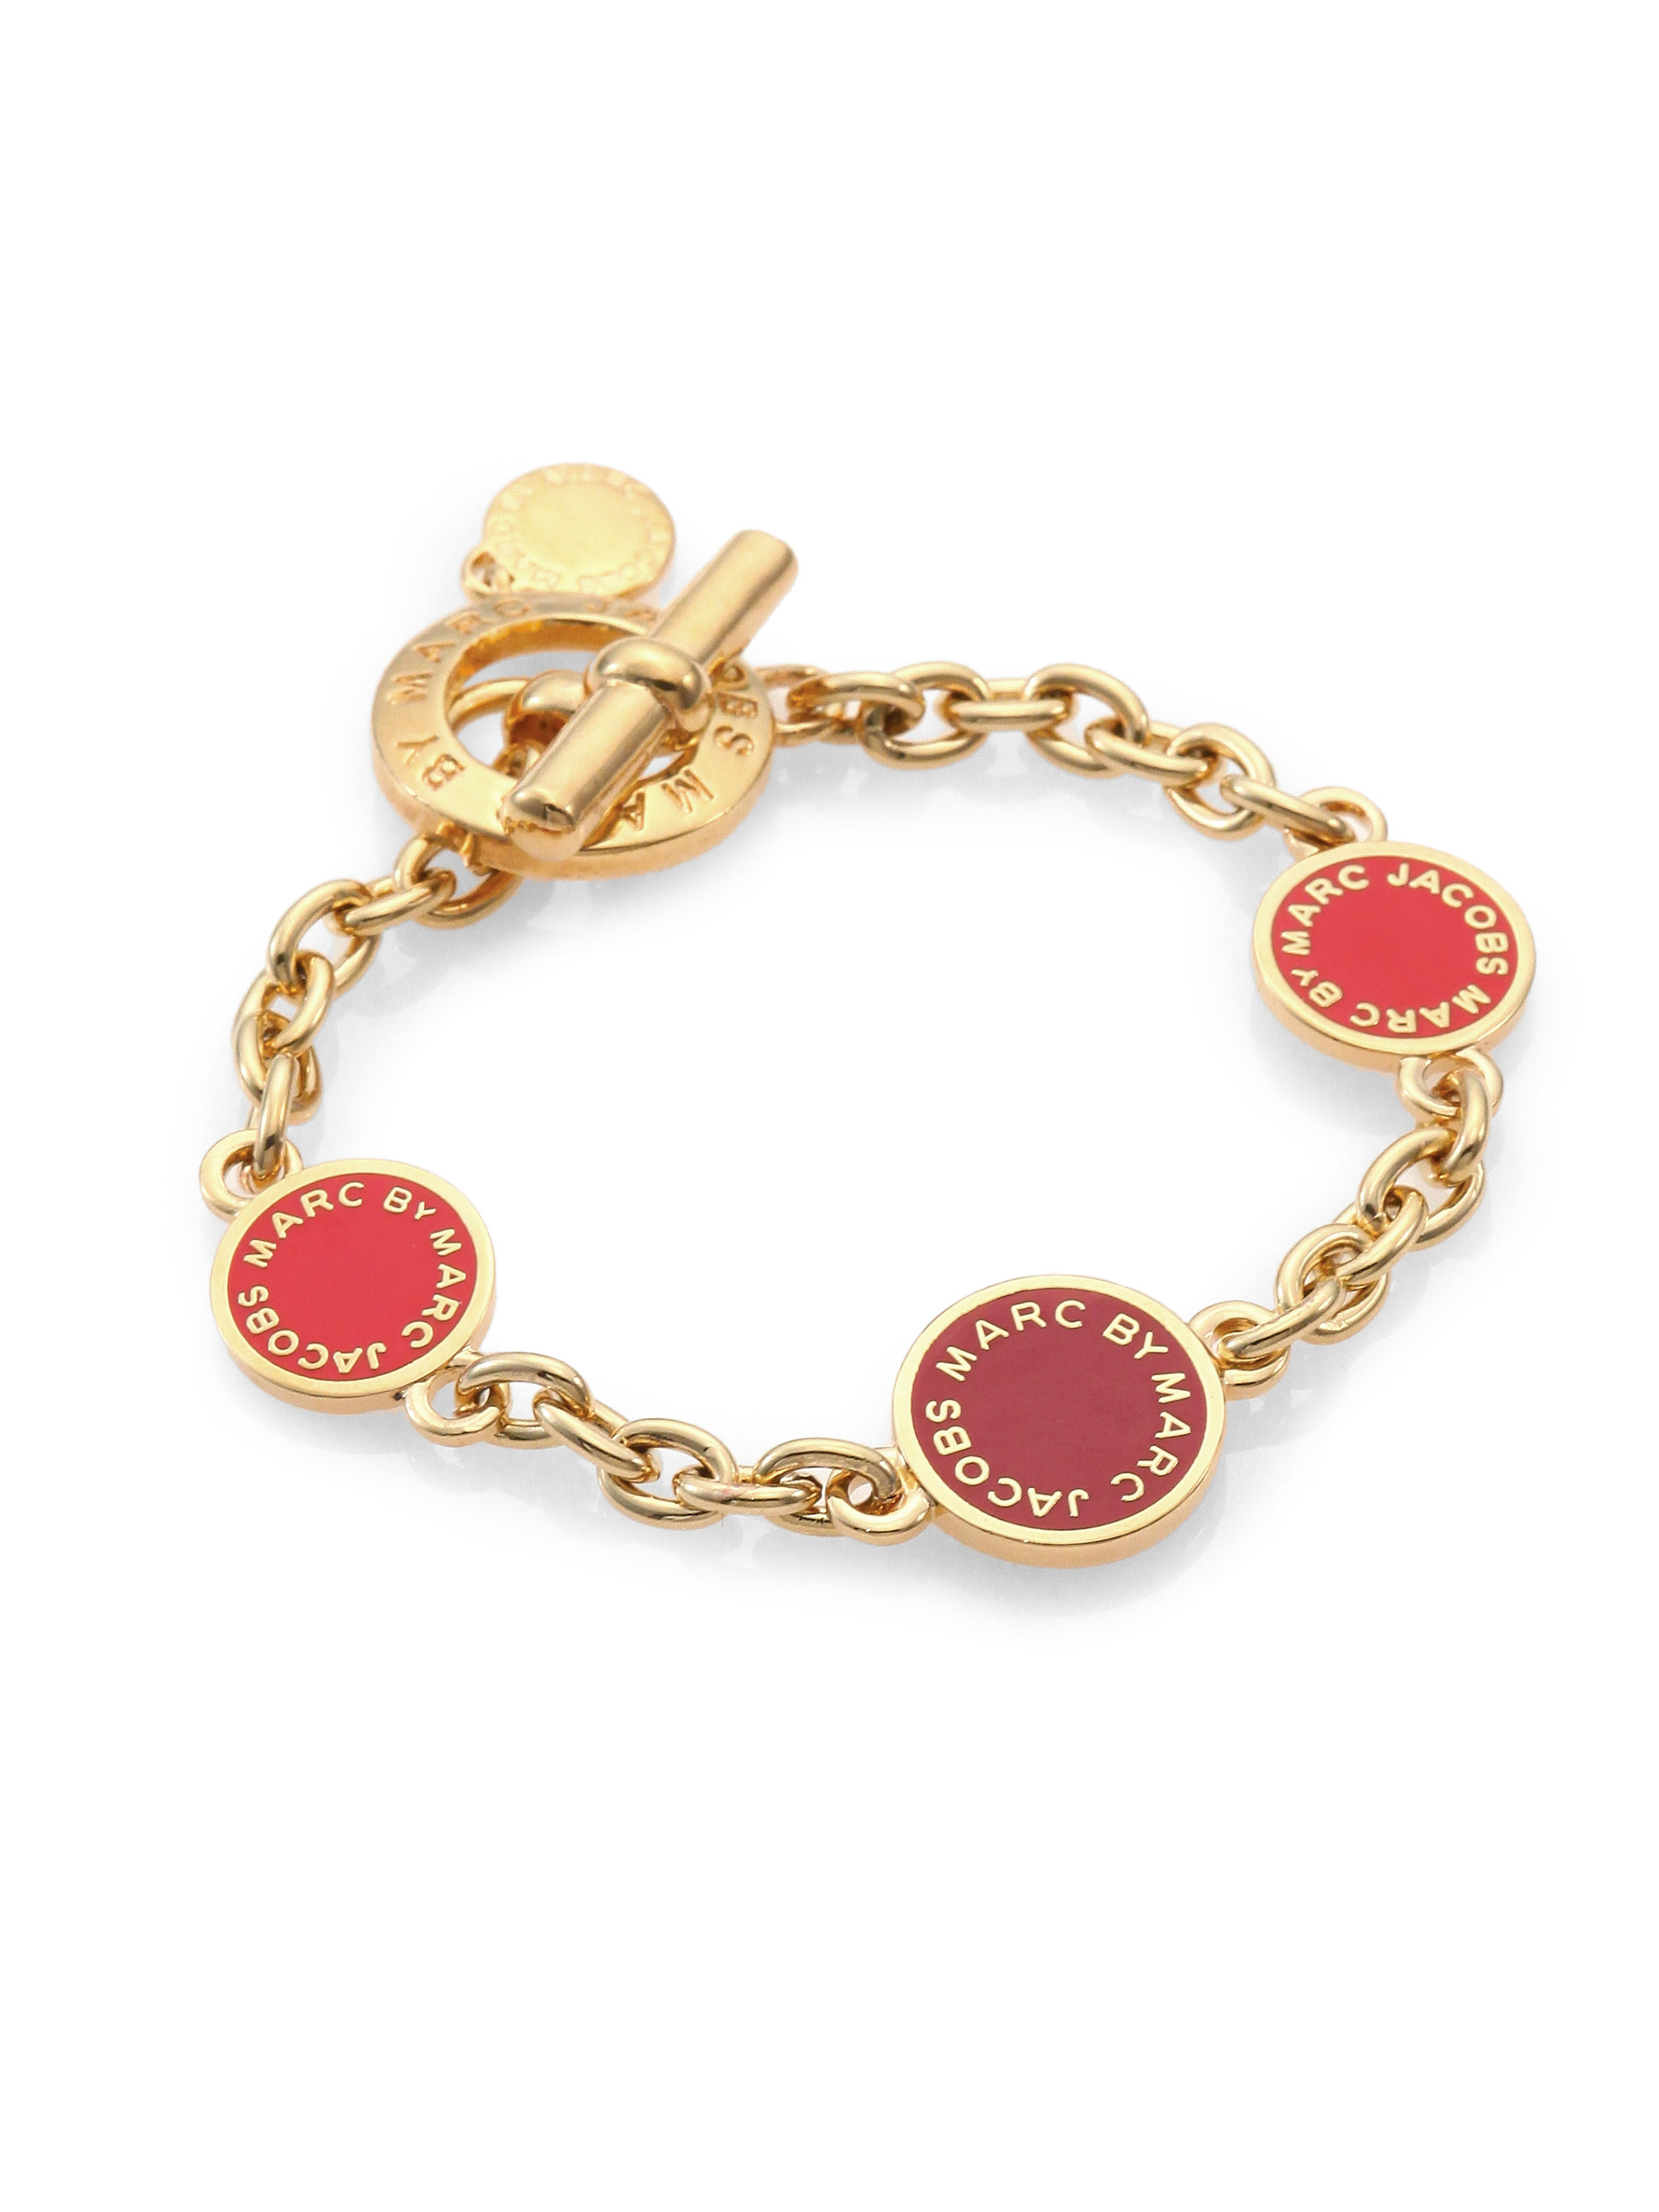 claire paris bracelets gold bangles bangle us s charm bracelet